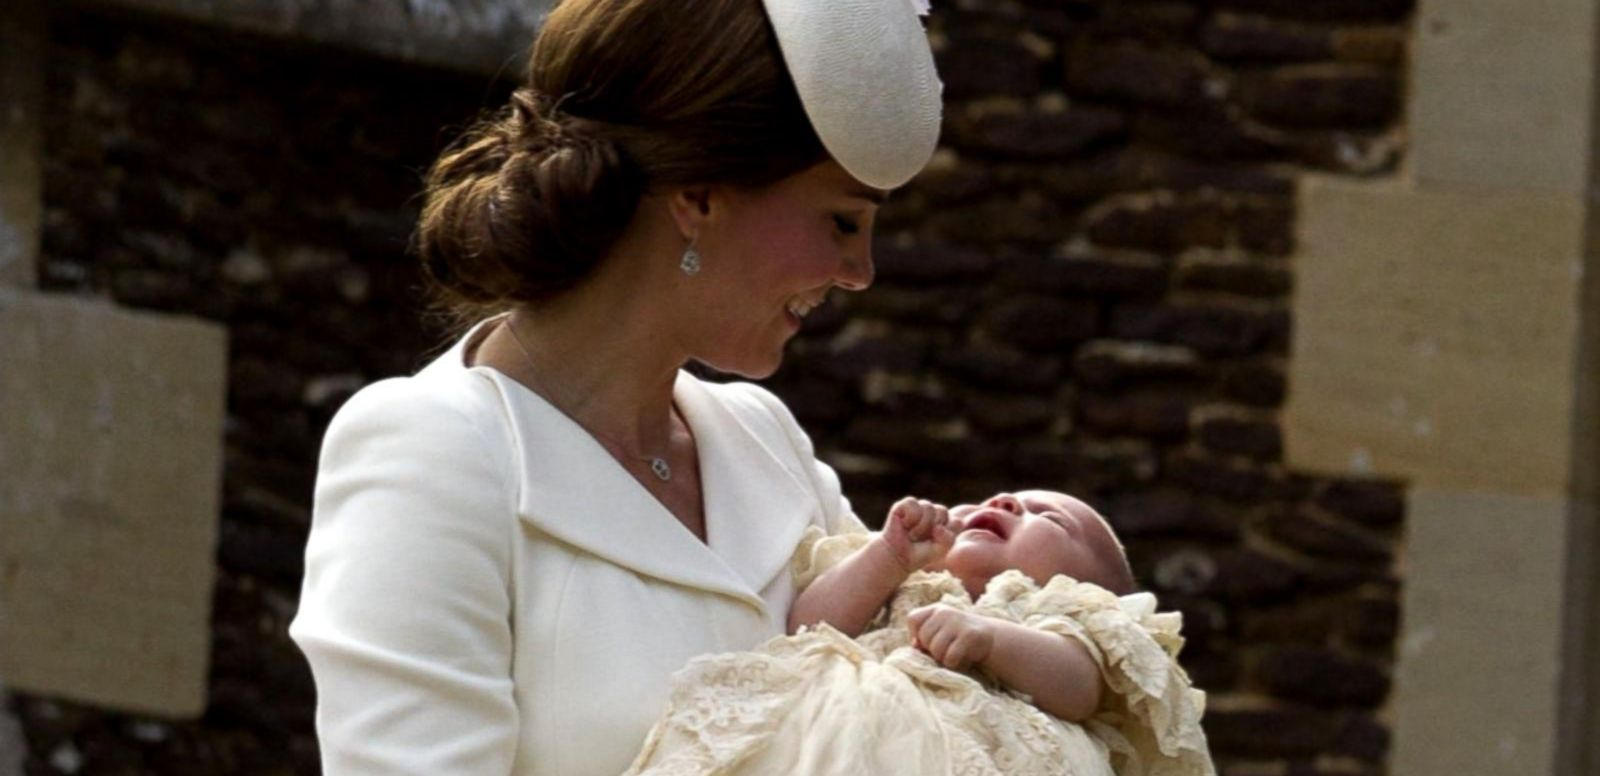 VIDEO: Inside Princess Charlotte's Royal Christening